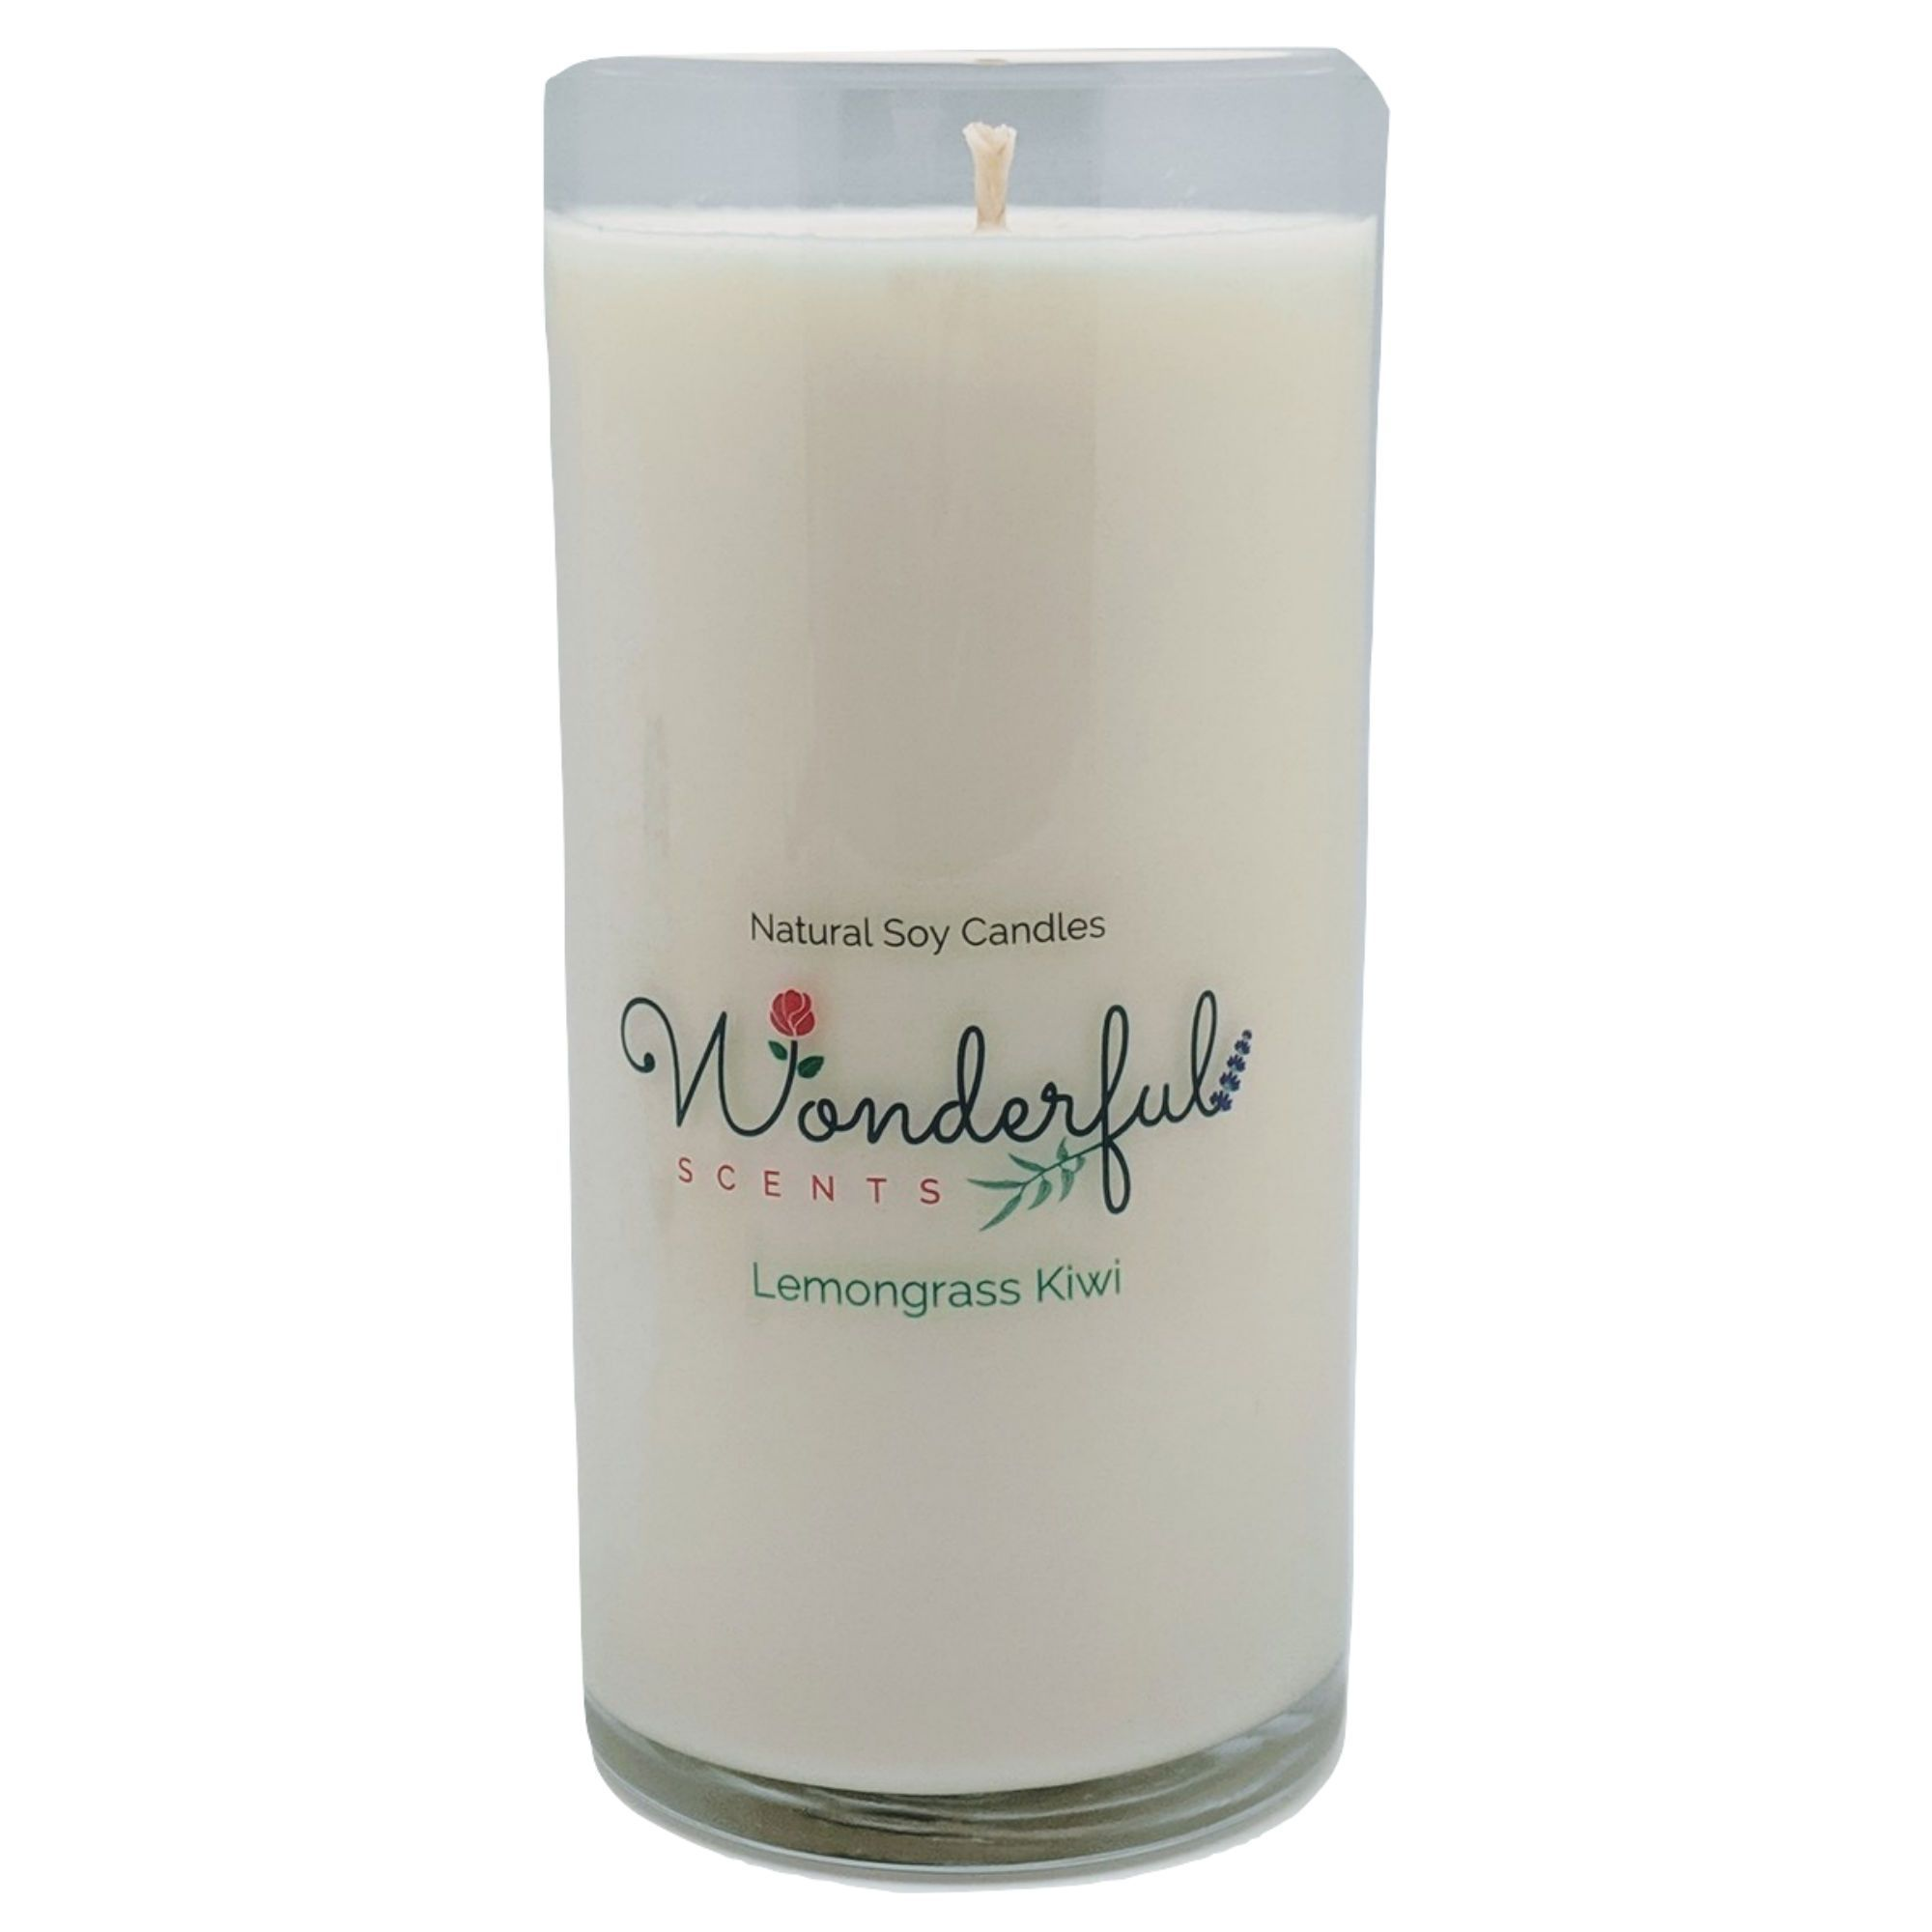 Soy Wax Pillar Candles With Cotton Wick And Essential Oils